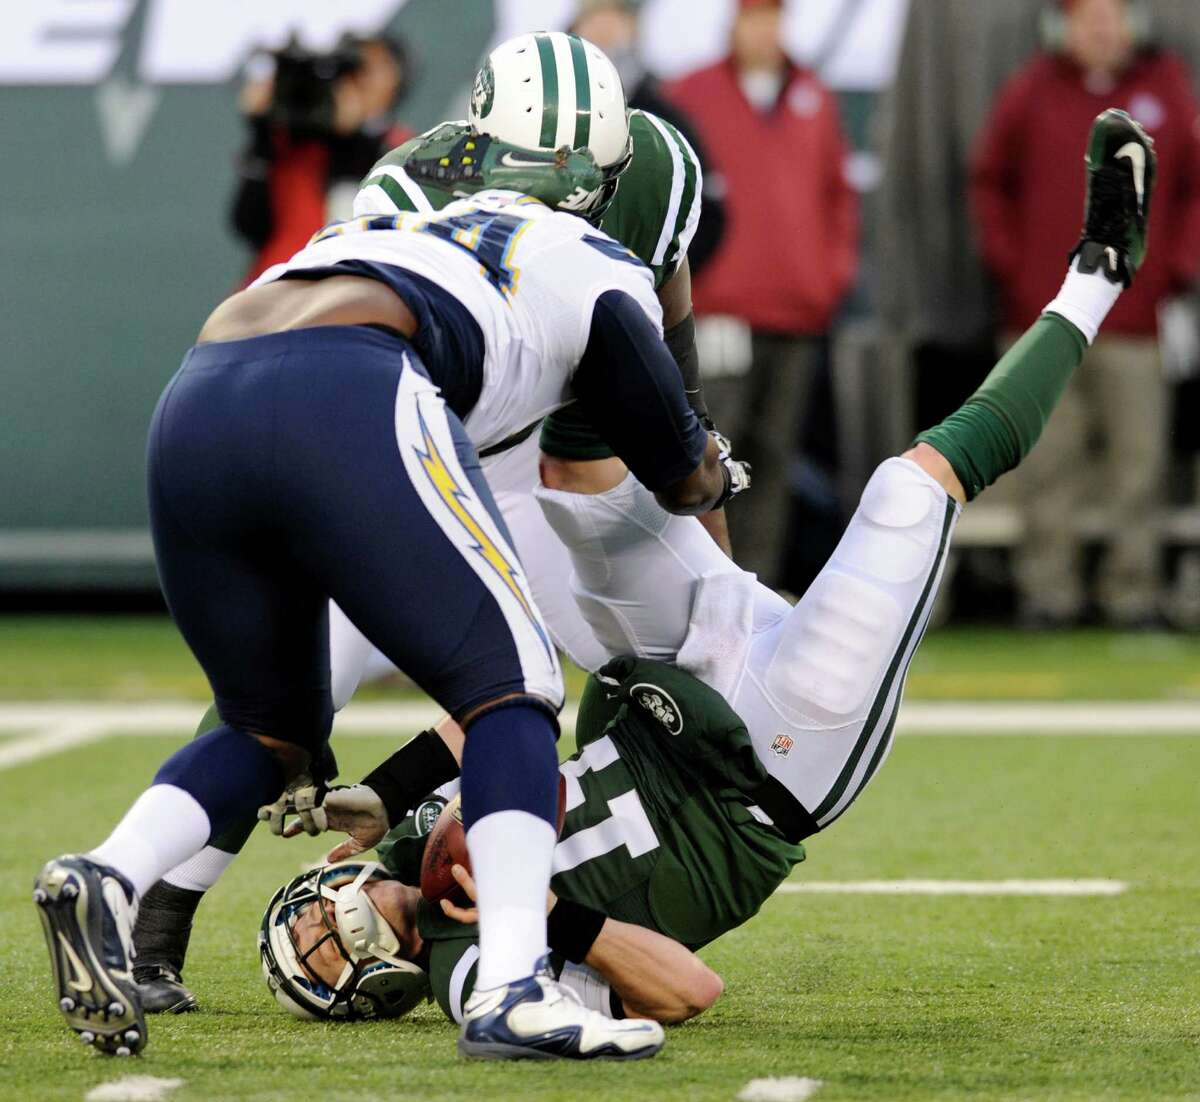 FILE - In this Dec. 23, 2012, file photo, New York Jets quarterback Greg McElroy, bottom, is sacked by San Diego Chargers defensive end Corey Liuget, front left, during the second half of an NFL football game in East Rutherford, N.J. McElroy, who was sacked 11 times last weekend, has a concussion and will be replaced by Mark Sanchez as the Jets' starting quarterback in the season finale at Buffalo on Sunday, coach Rex Ryan said. (AP Photo/Bill Kostroun, File)